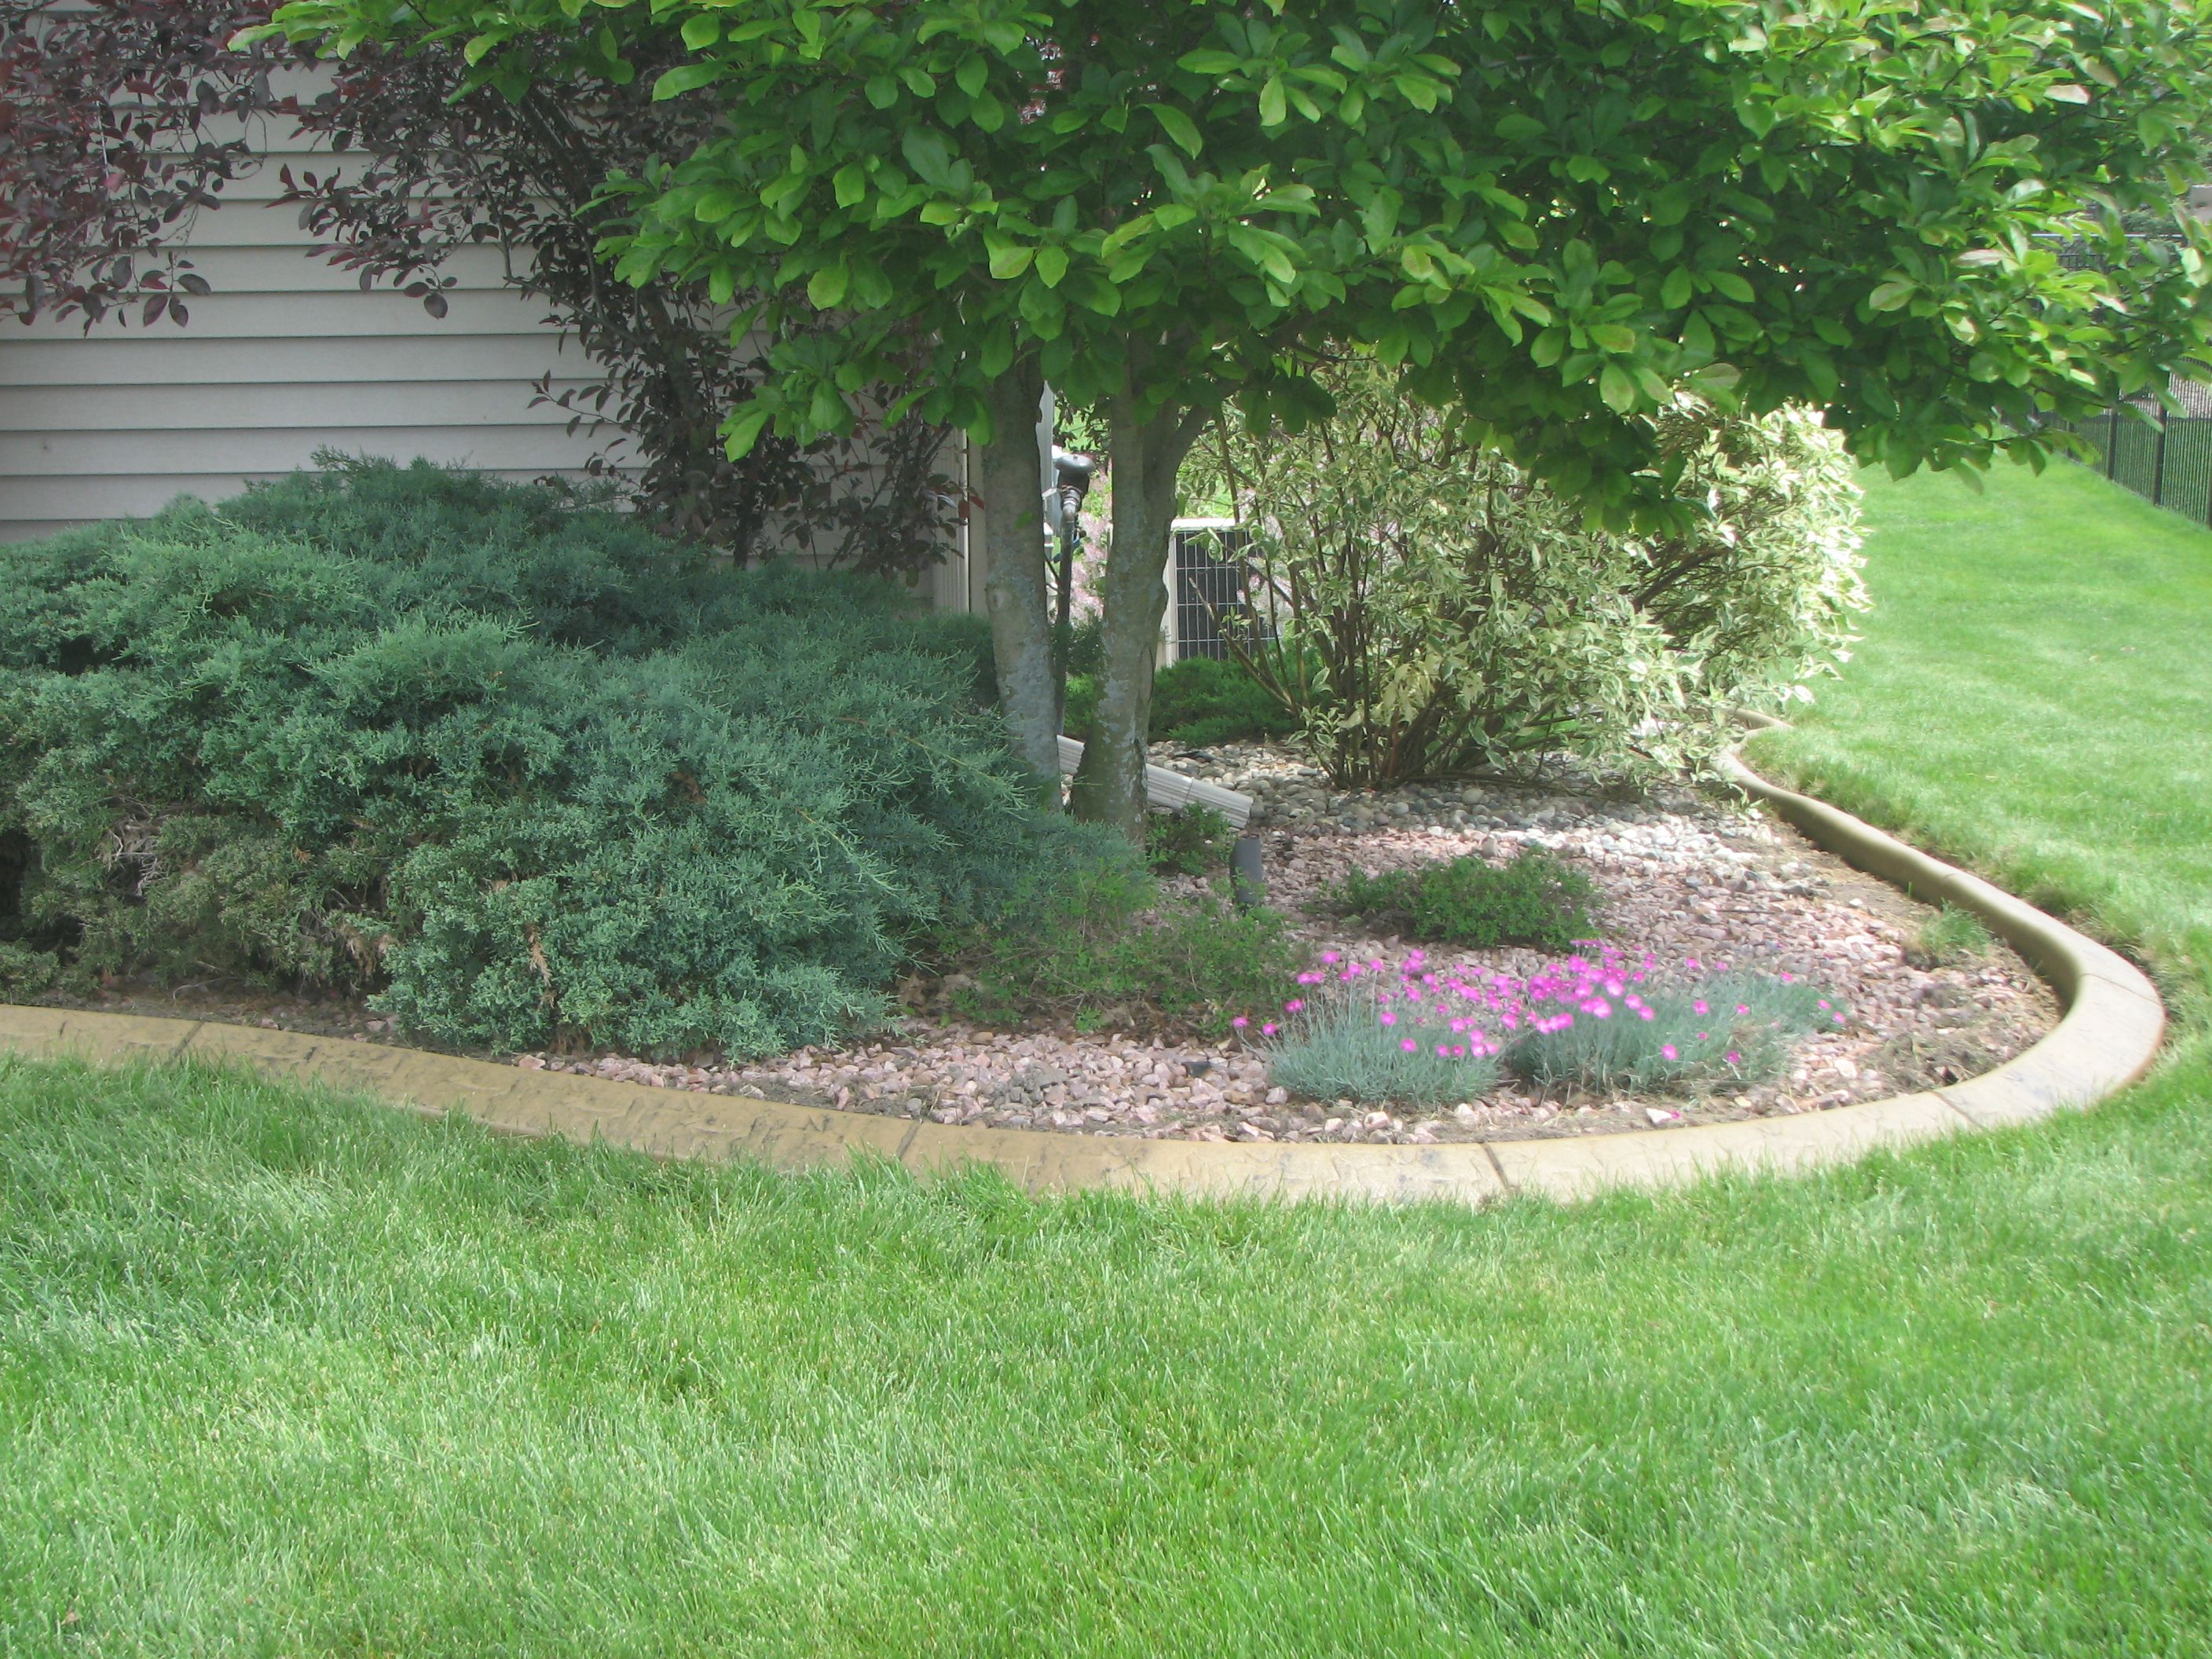 Upgrade your lawn and garden edging using decorative concrete edging ...